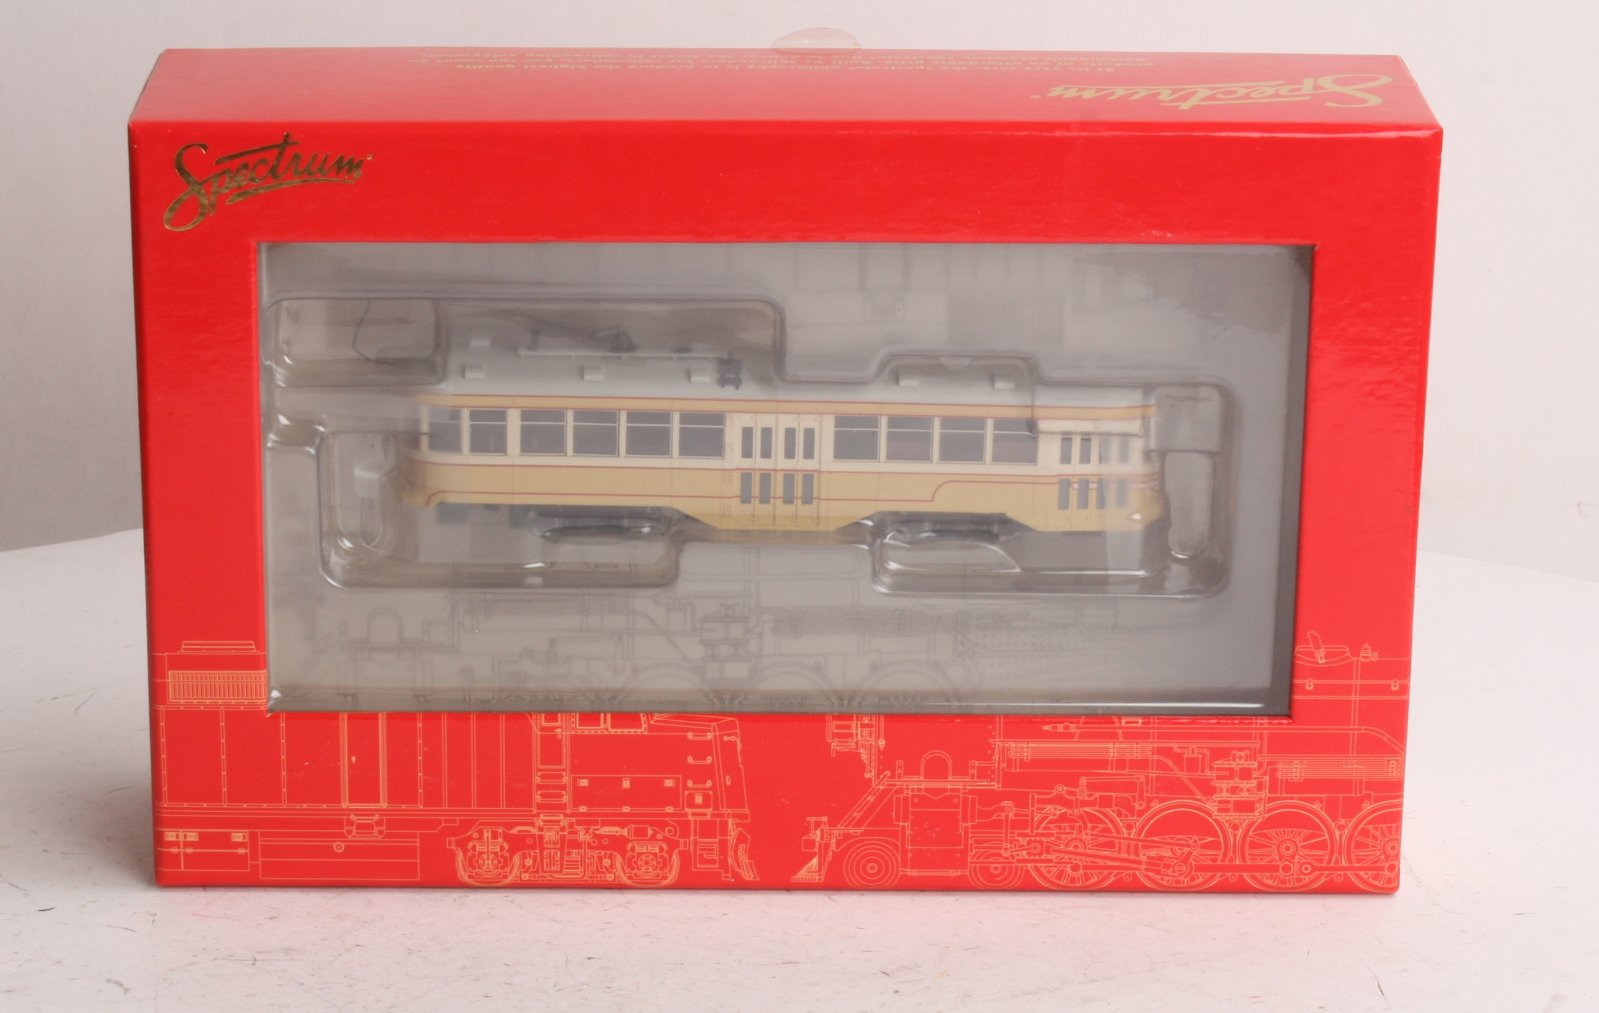 Bachmann 84608 Spectrum Cleveland Witt Street Car w/DCC Here is a Spectrum 84608 Cleveland Witt Street Car. This car fefatures a durable plastic shell, motor, sprung trolley pole, DCC-equipped for speed, direction, and lighting, full interior & lights, dual flywheels, overhead wire and track pickup, and metal wheels.Condition: Factory New (C-9All original; unused; factory rubs and evidence of handling, shipping and factory test run.Standards for all toy train related accessory items apply to the visual appearance of the item and do not consider the operating functionality of the equipment.Condition and Grading Standards are subjective, at best, and are intended to act as a guide. )Operational Status: FunctionalThis item is brand new from the factory.Original Box: Yes (P-9May have store stamps and price tags. Has inner liners.)Manufacturer: BachmannModel Number: 84608Road Name: UndecoratedMSRP: $189.00Scale/Era: HO ModernModel Type: Motorized UnitsAvailability: Ships in 3 to 5 Business Days.The Trainz SKU for this item is P11462642. Track: 11462642 - FS - 001 - TrainzAuctionGroup00UNK - TDIDUNK